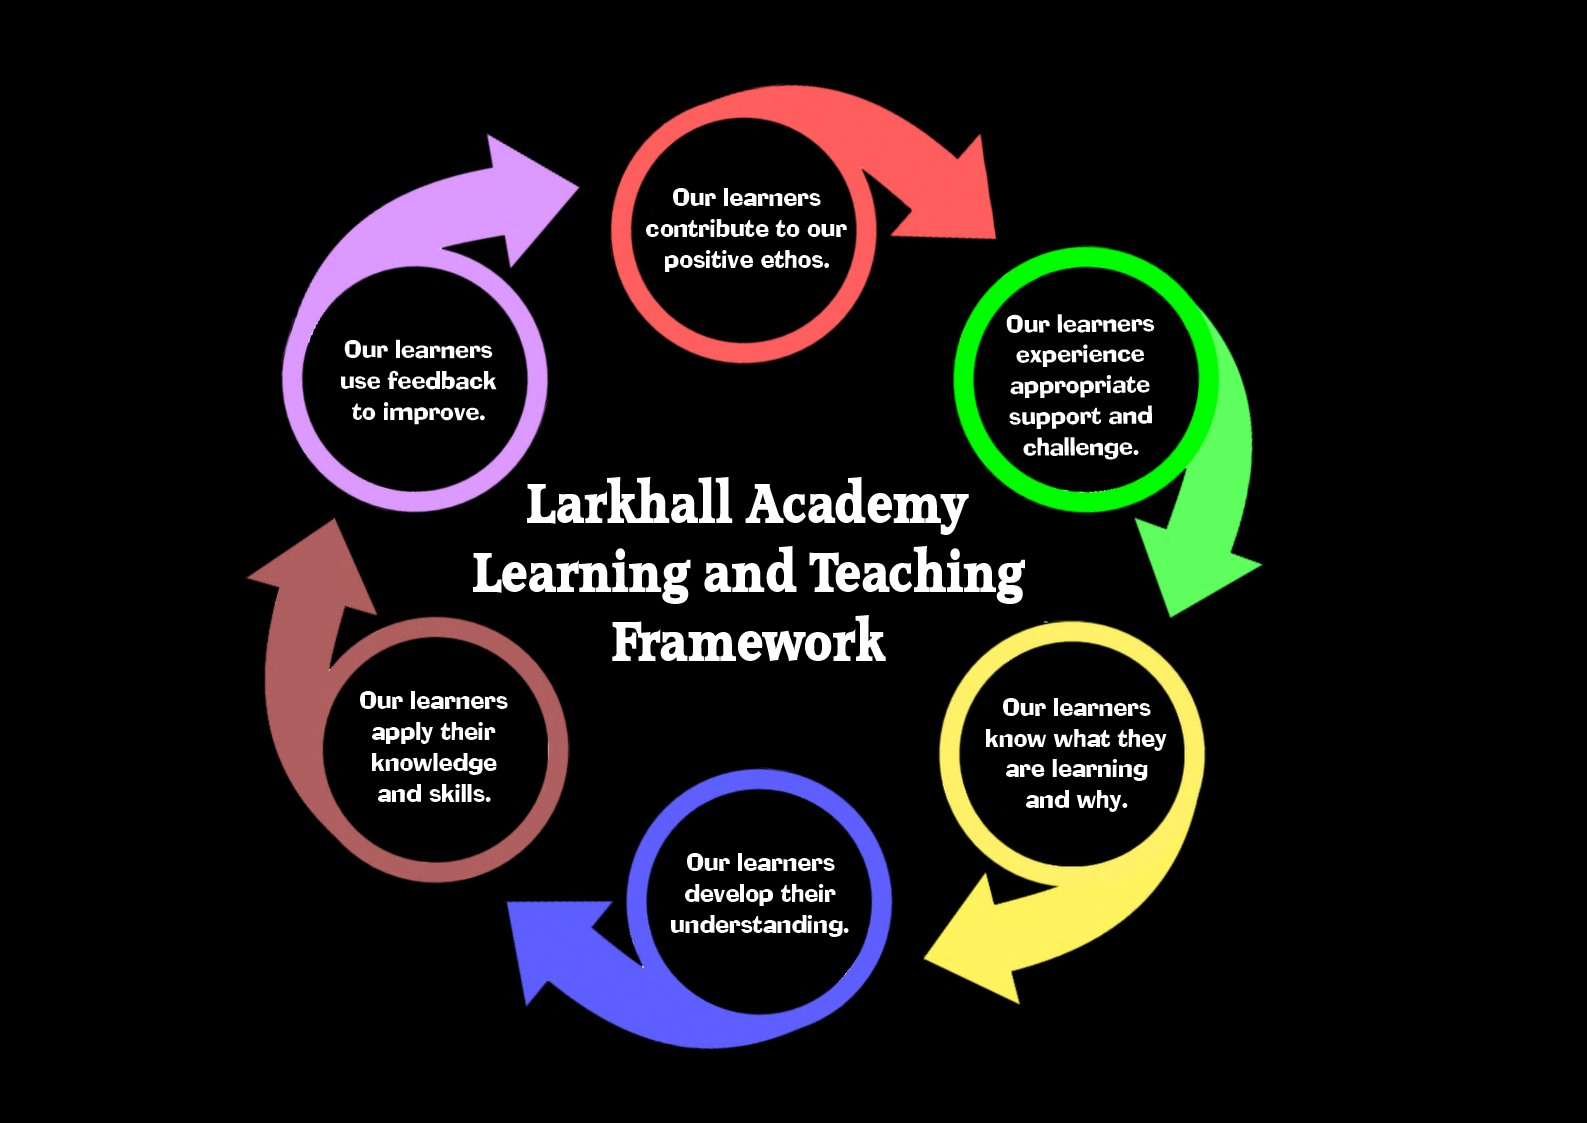 Learning and Teaching Framework